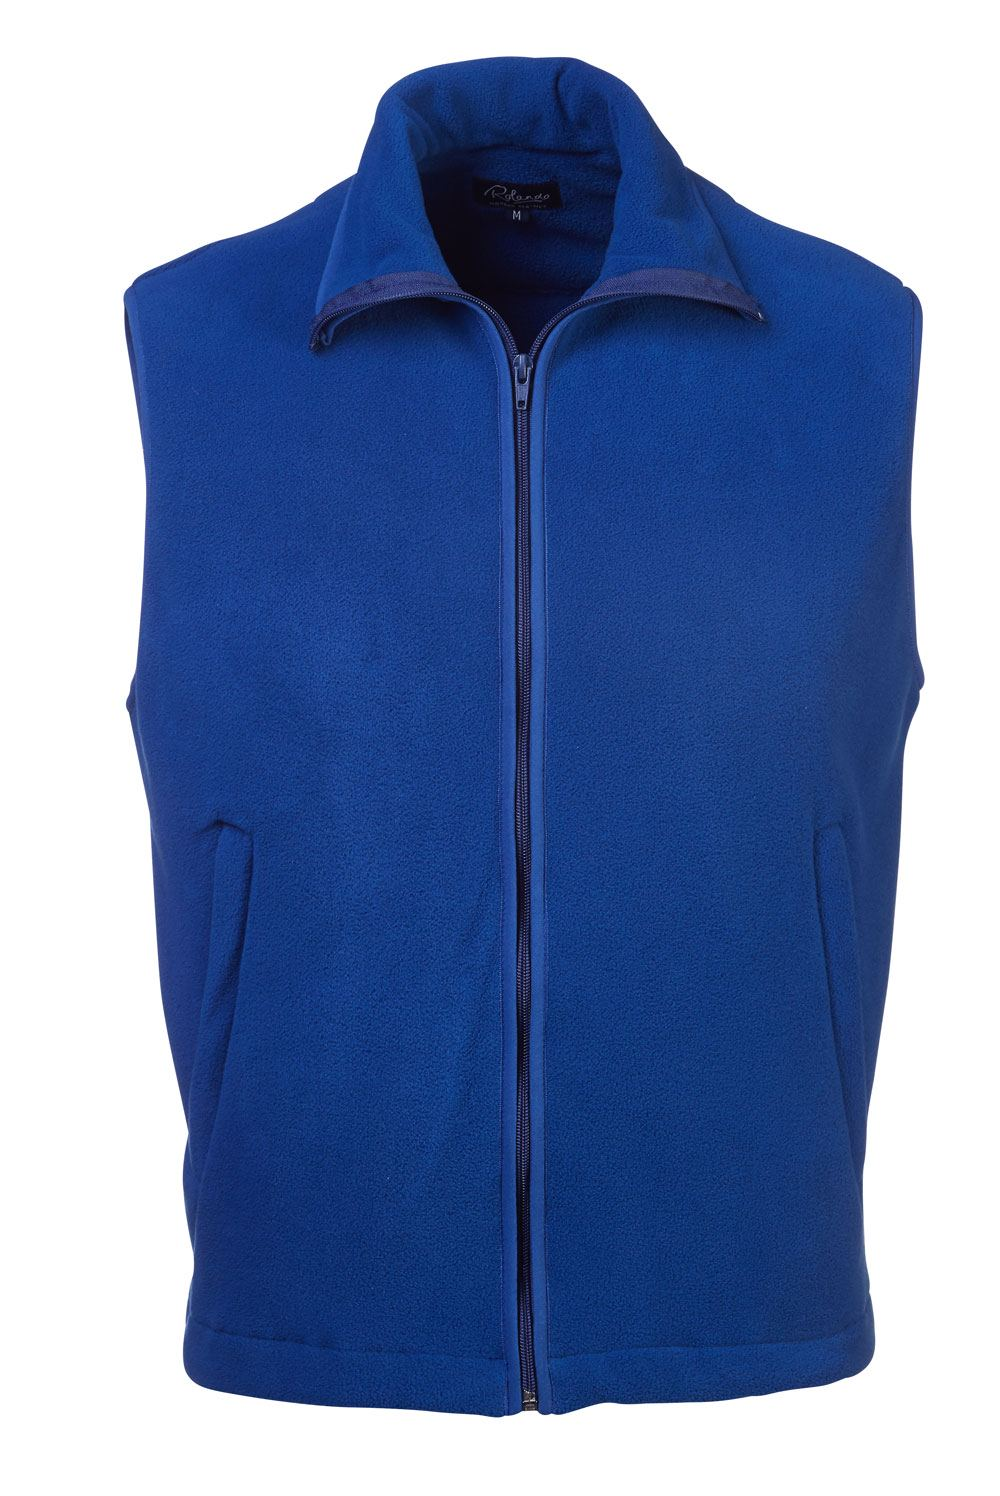 Robert S/less Polar Fleece - Royal